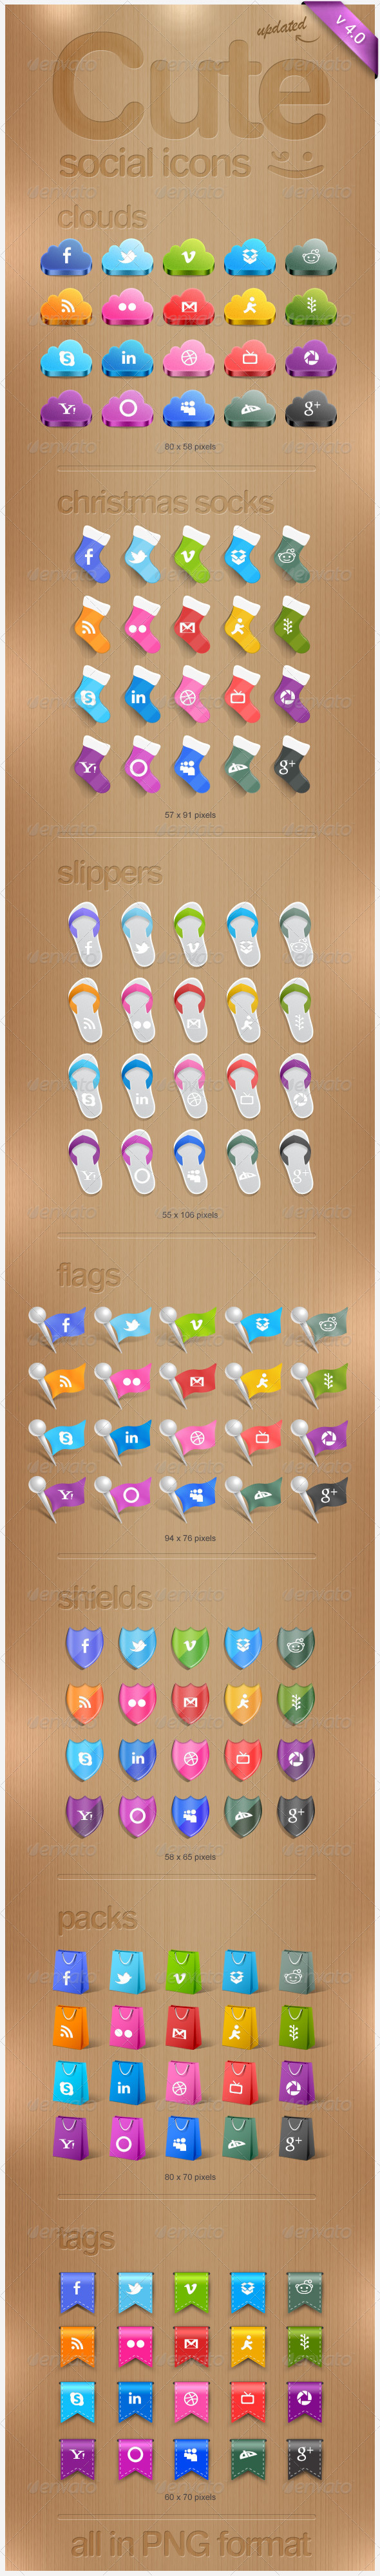 Cute Social Icons - Web Icons